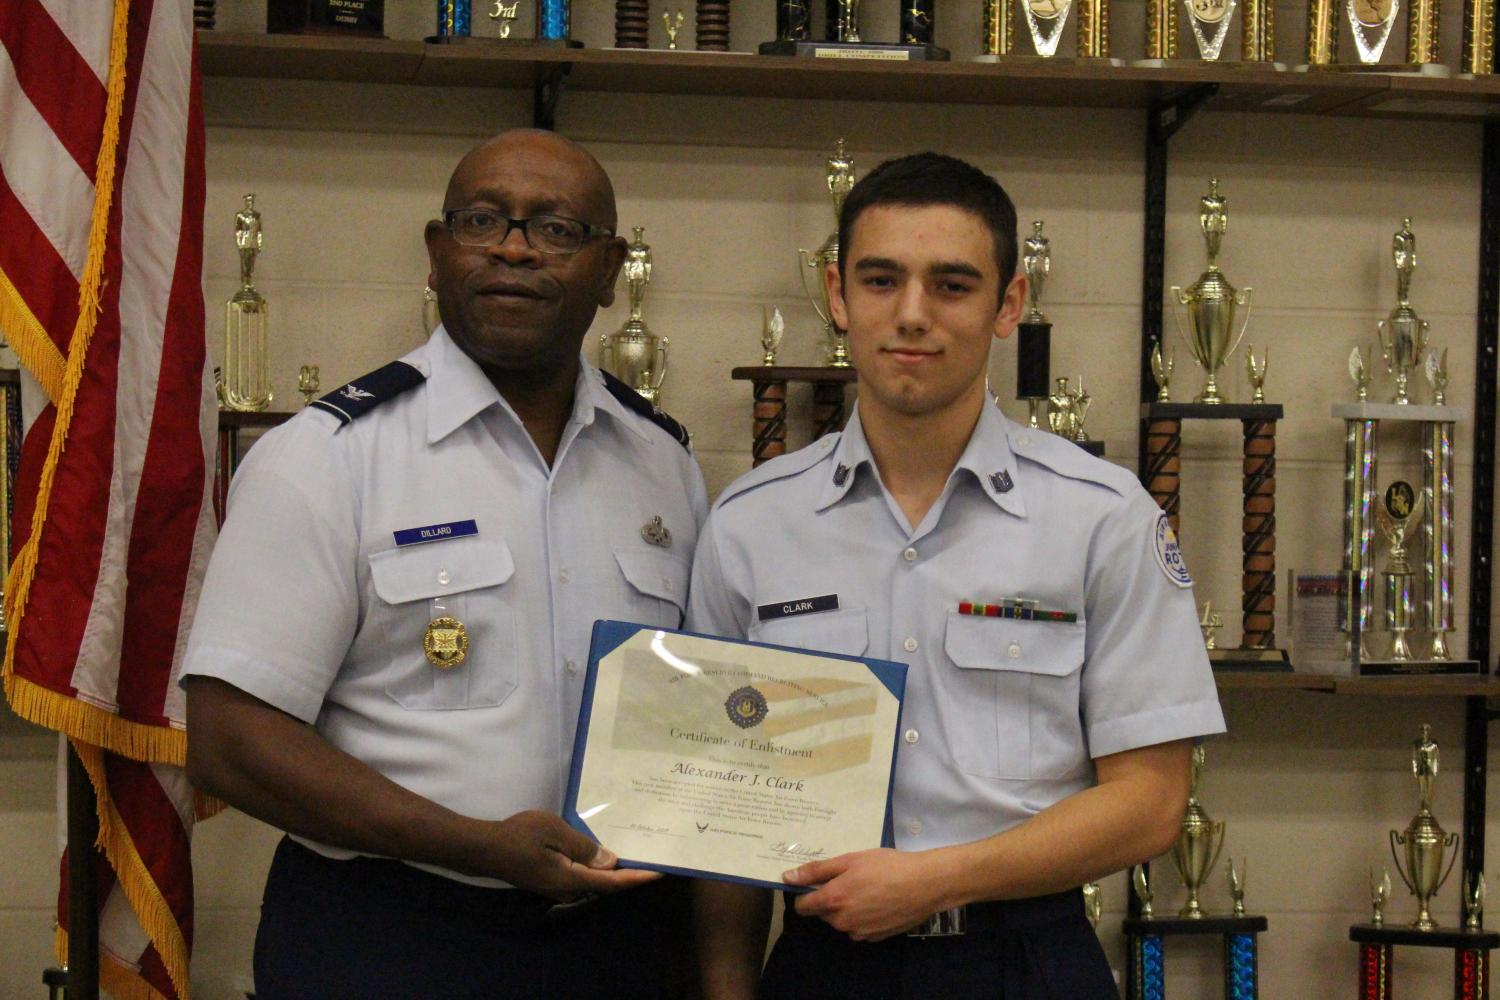 Senior Alexander Clark accepting his Certification of Enlistment from Colonel Michael Dillard